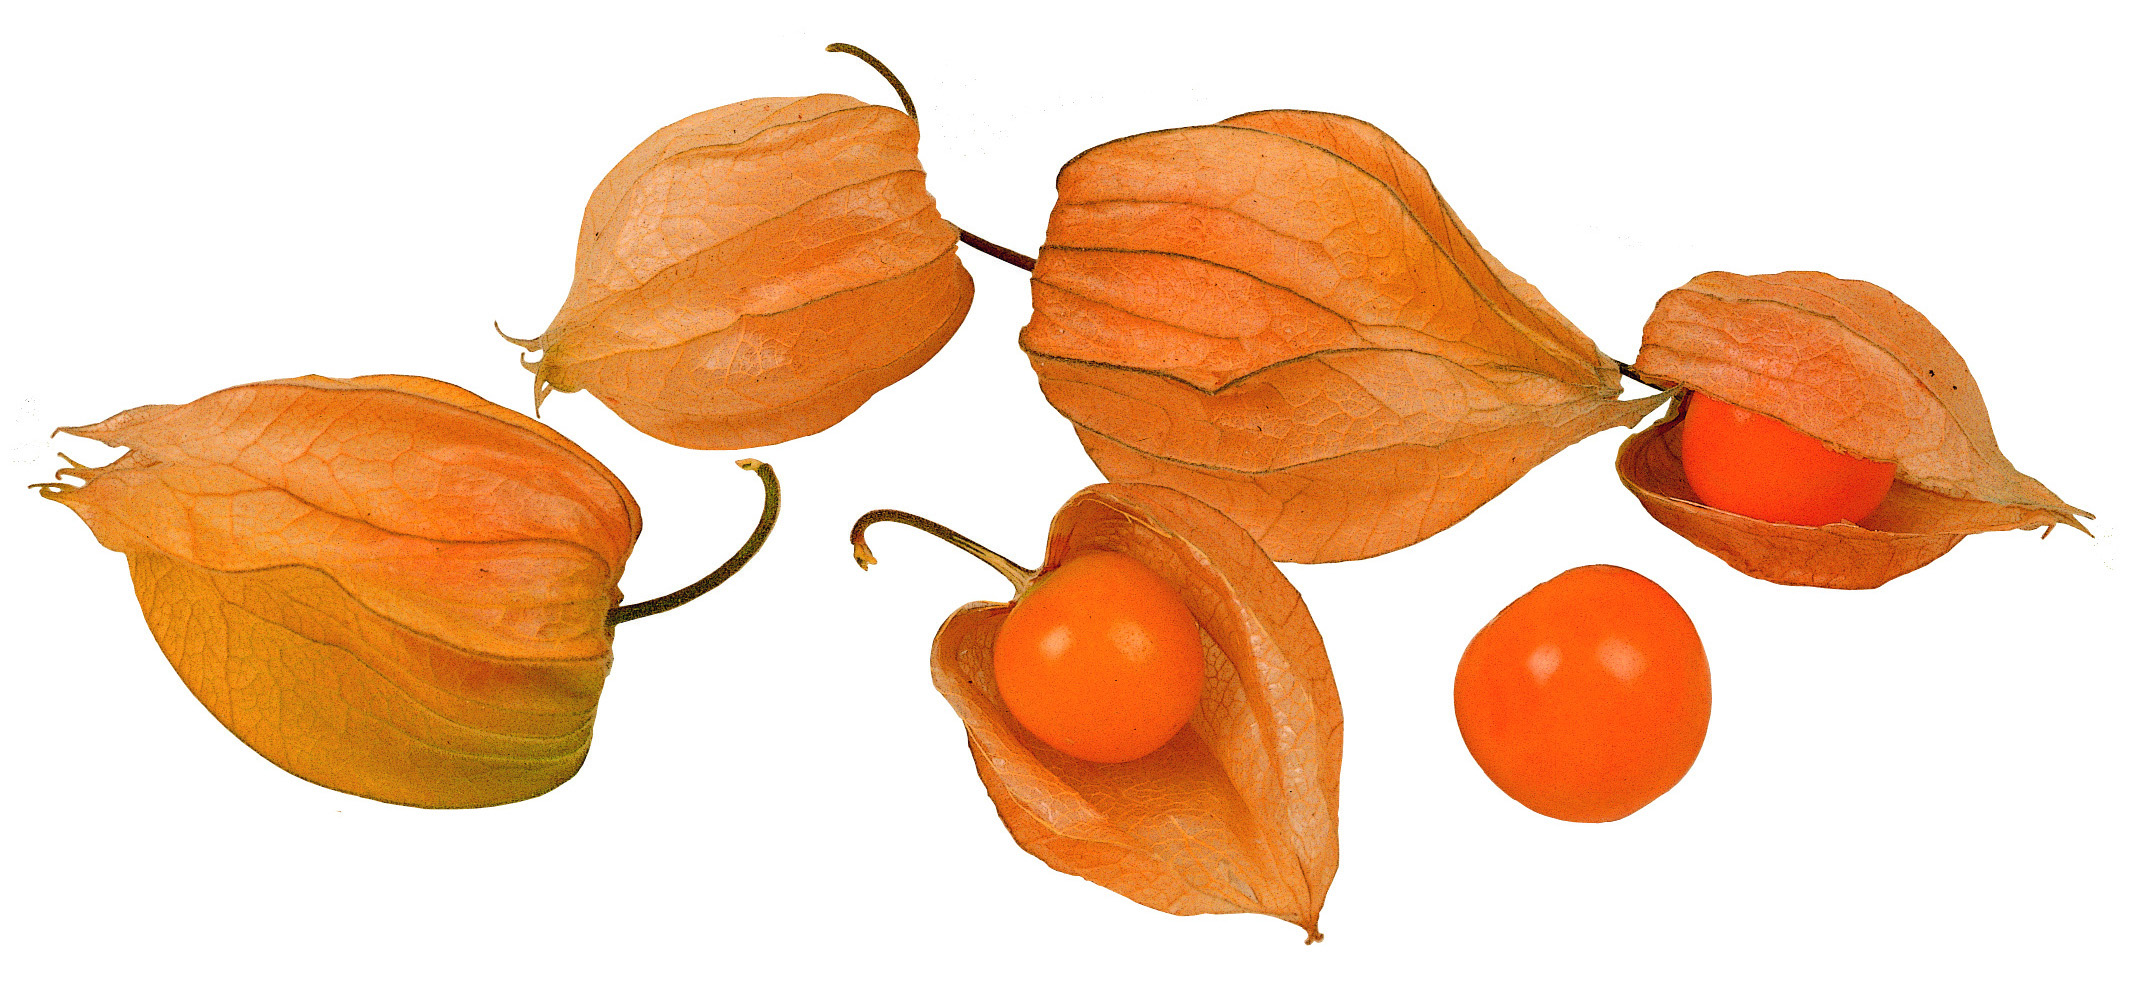 Frieda's Specialty Produce - Cape Gooseberries